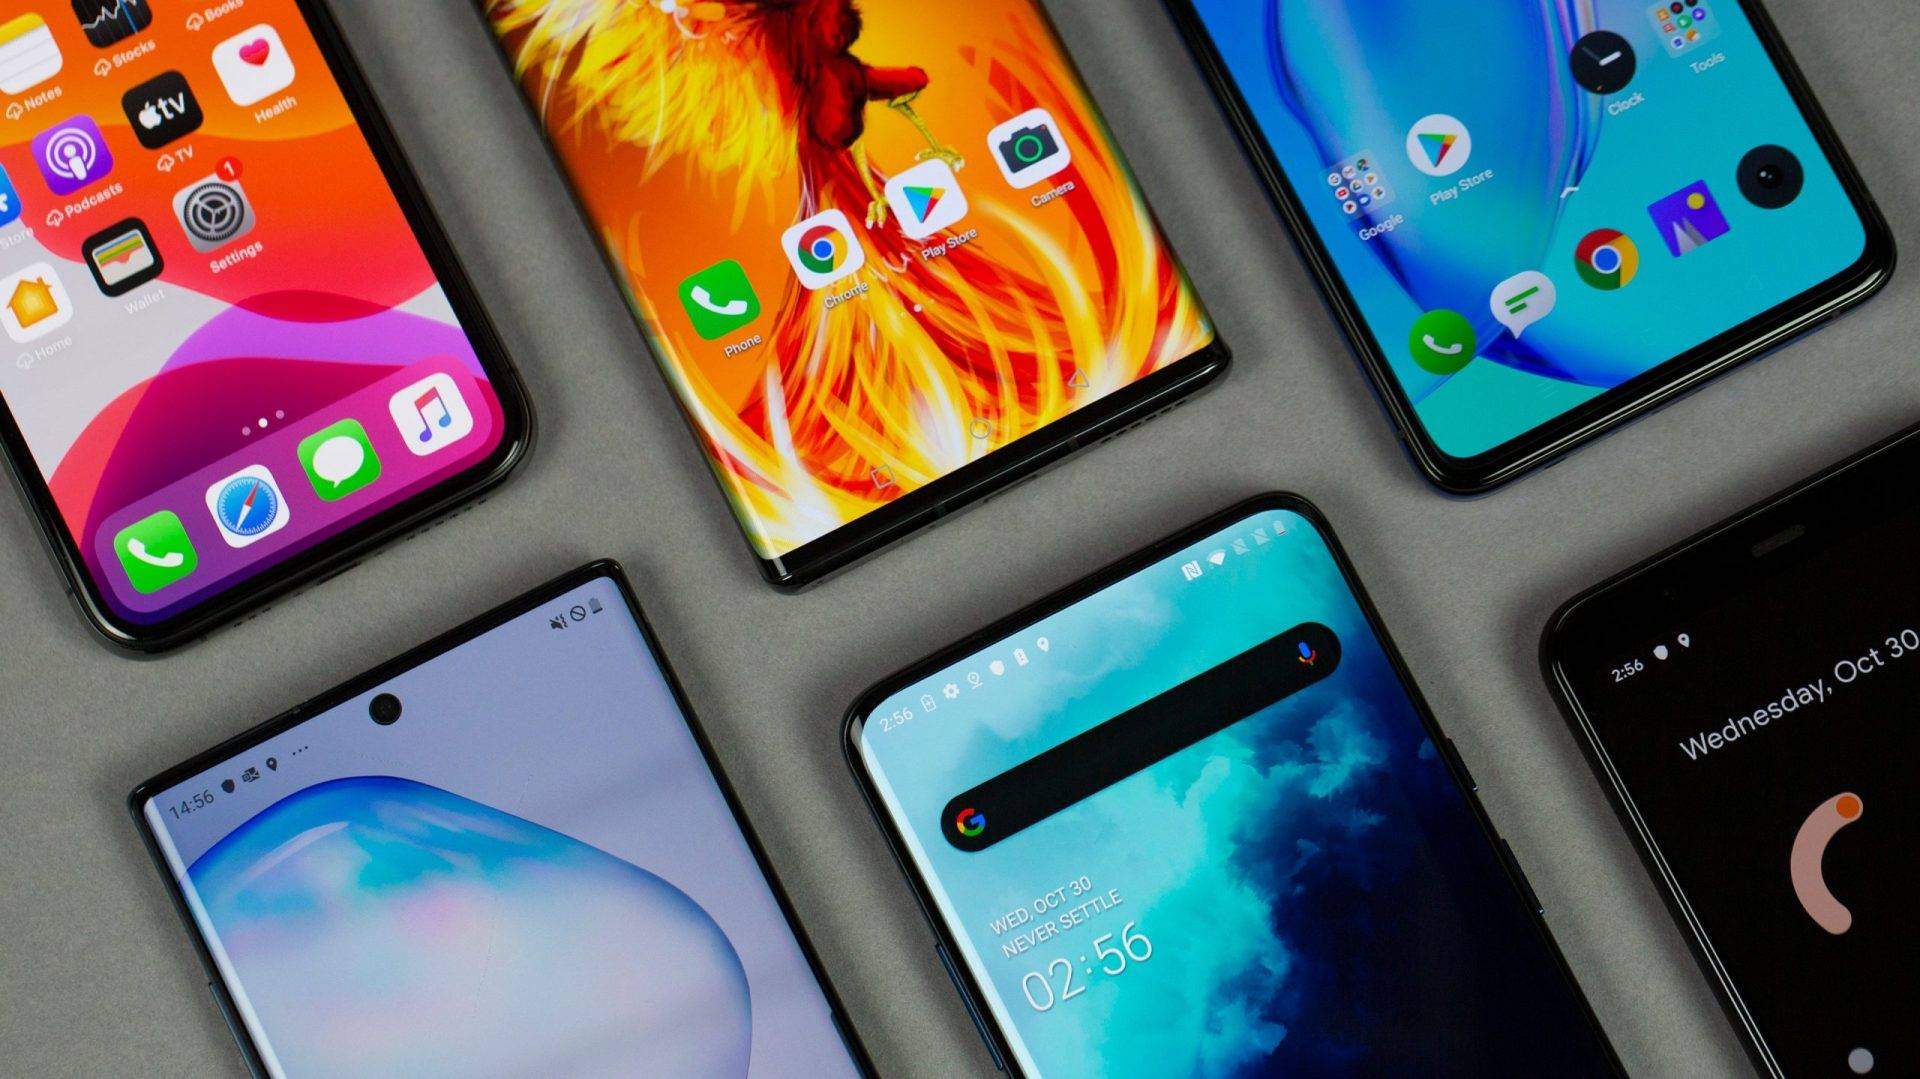 Smartphone Sales Expected To Drop To The Lowest In The Last Ten Years